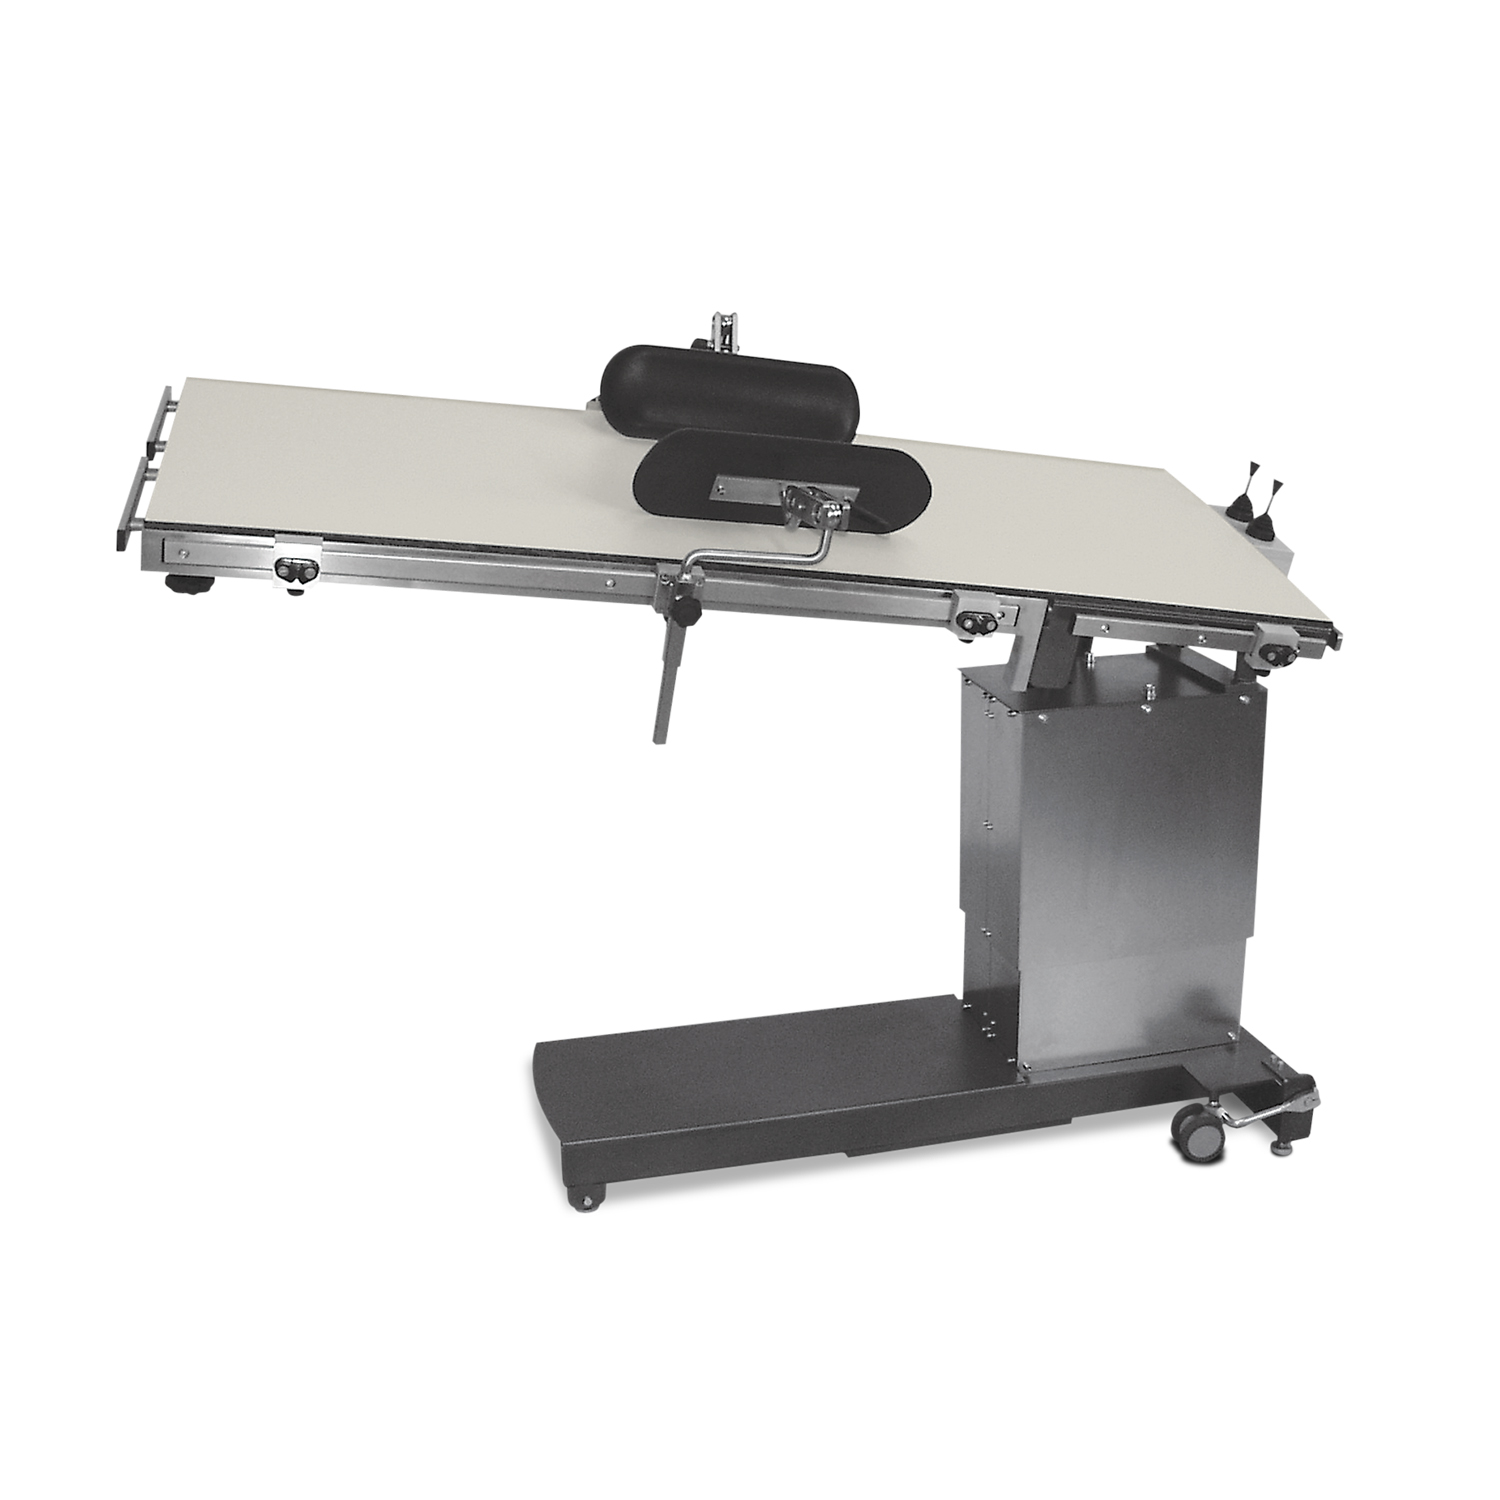 Pannomed Aeron Veterinary Surgical Table: C-Arm Compatible